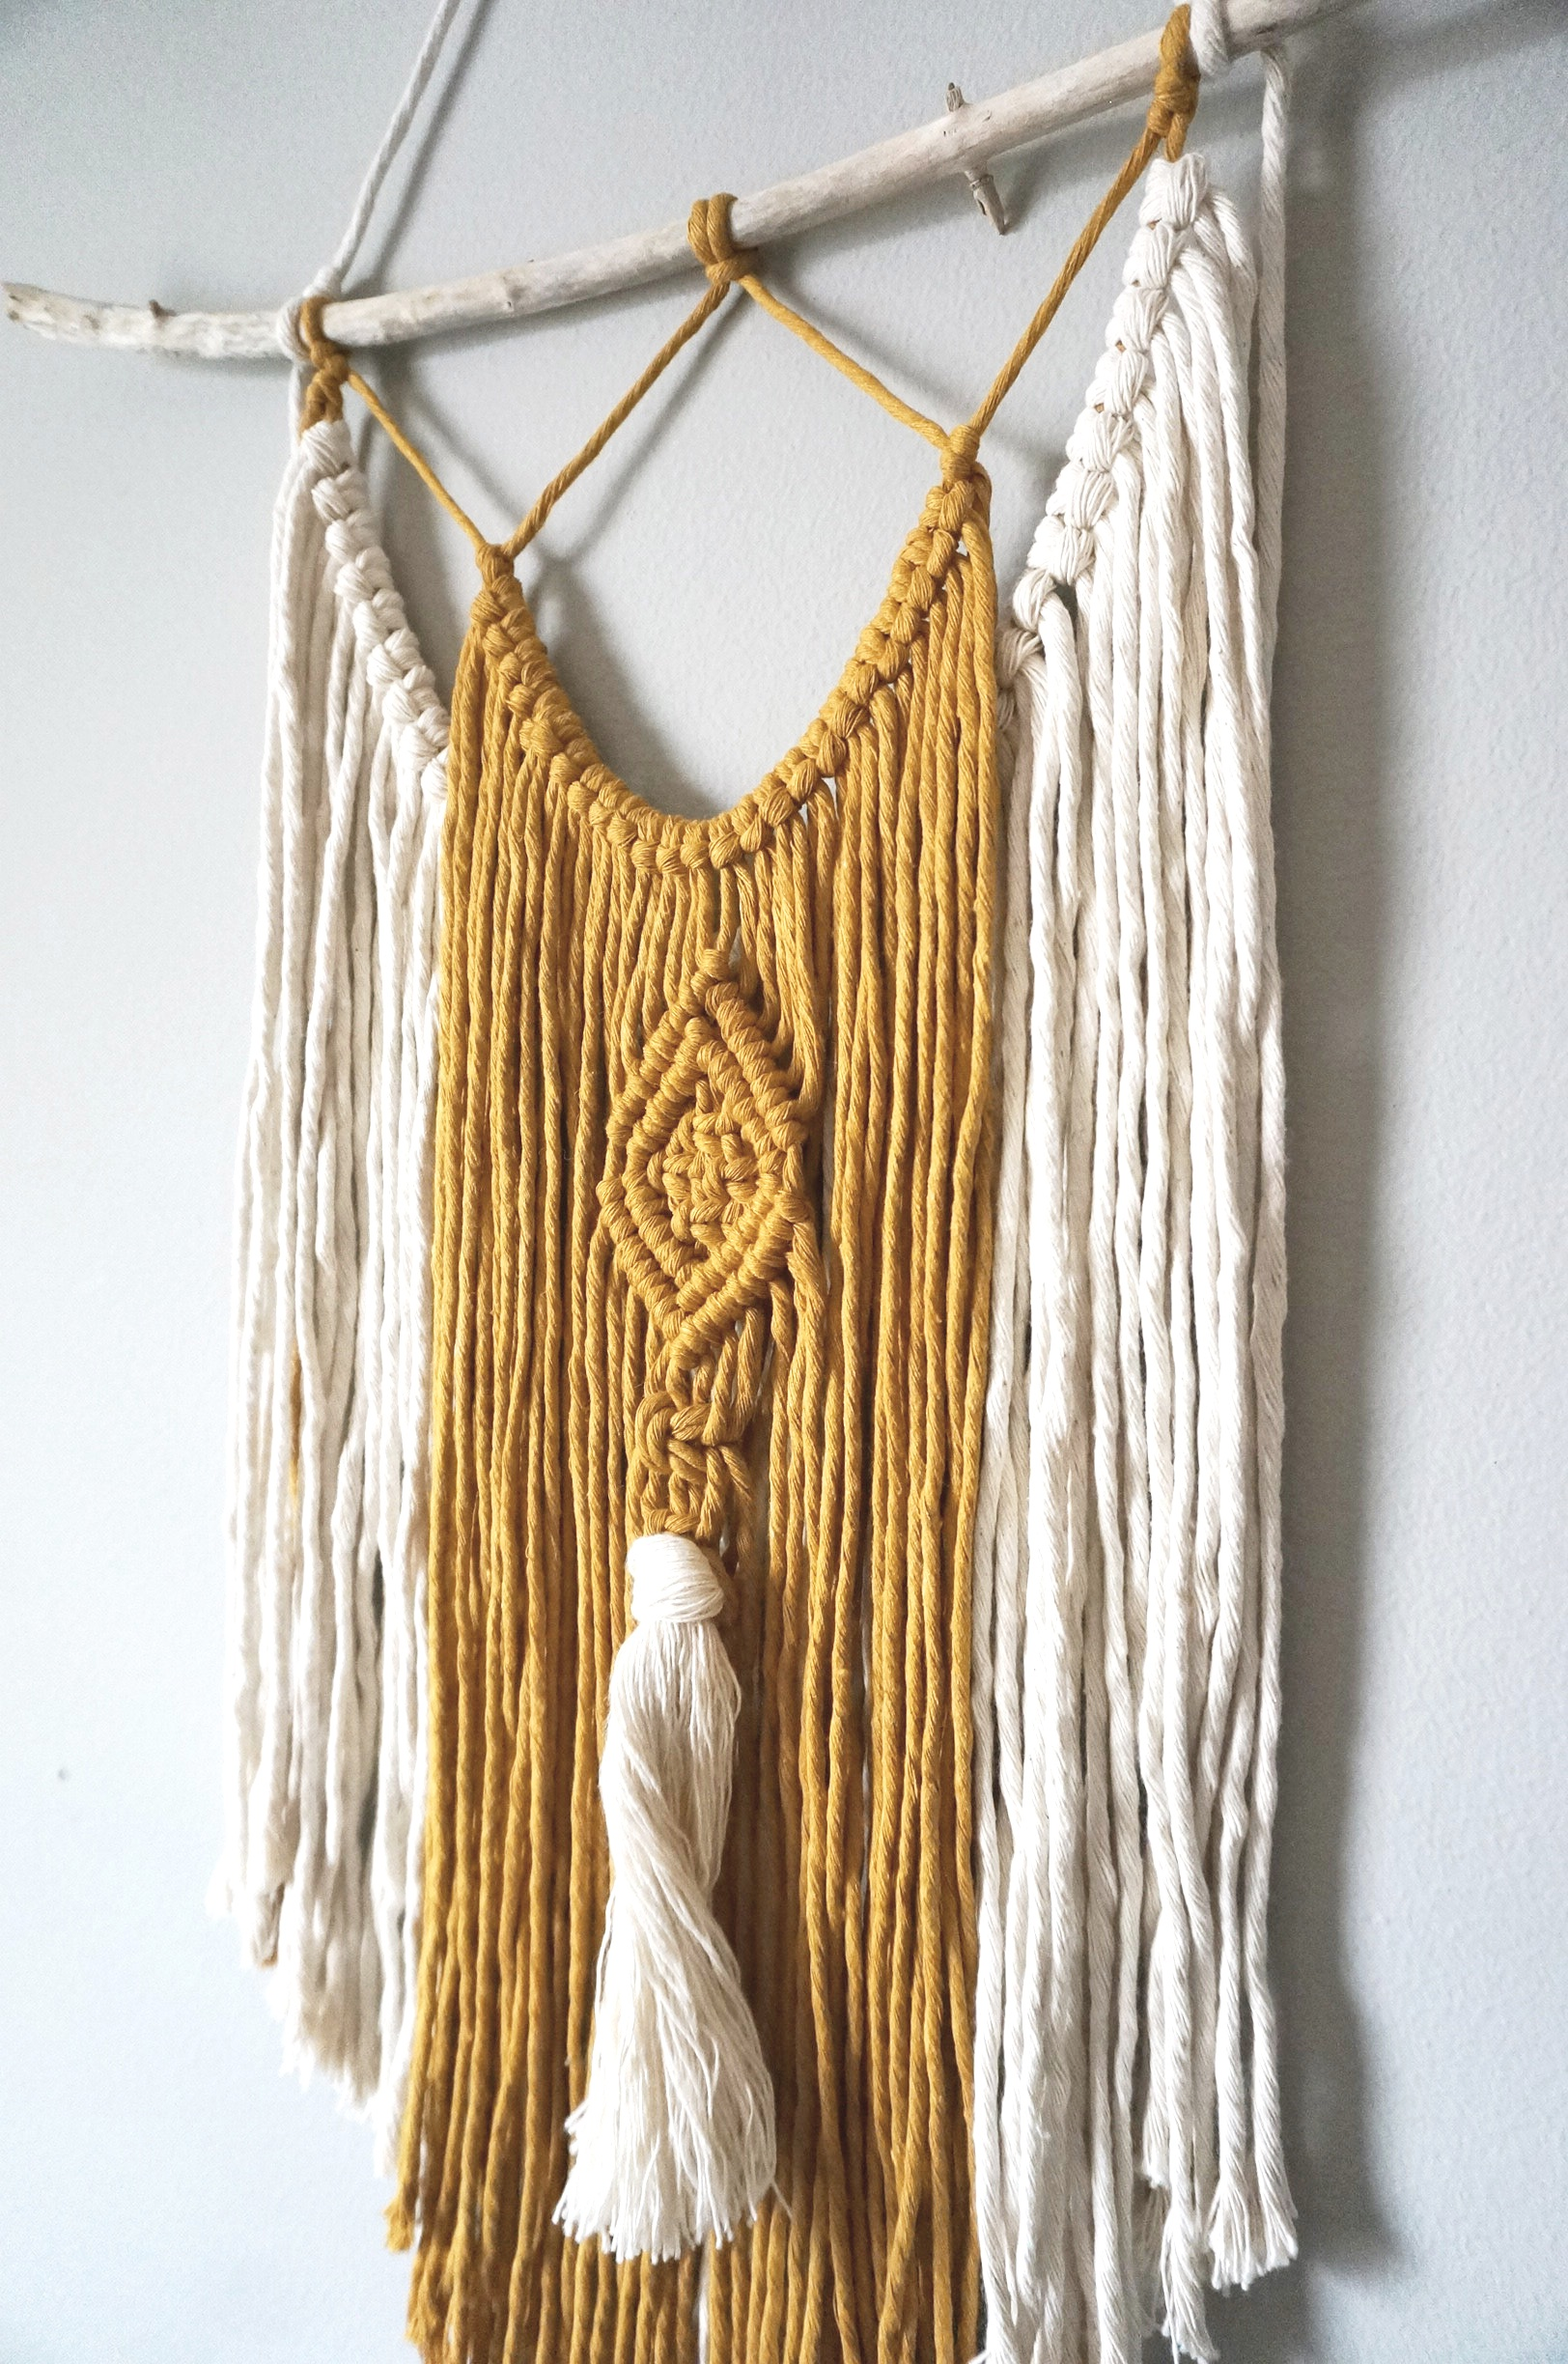 $45  |  Small Two-Tone Macrame Wall Hanging  |  Mustard + Ivory